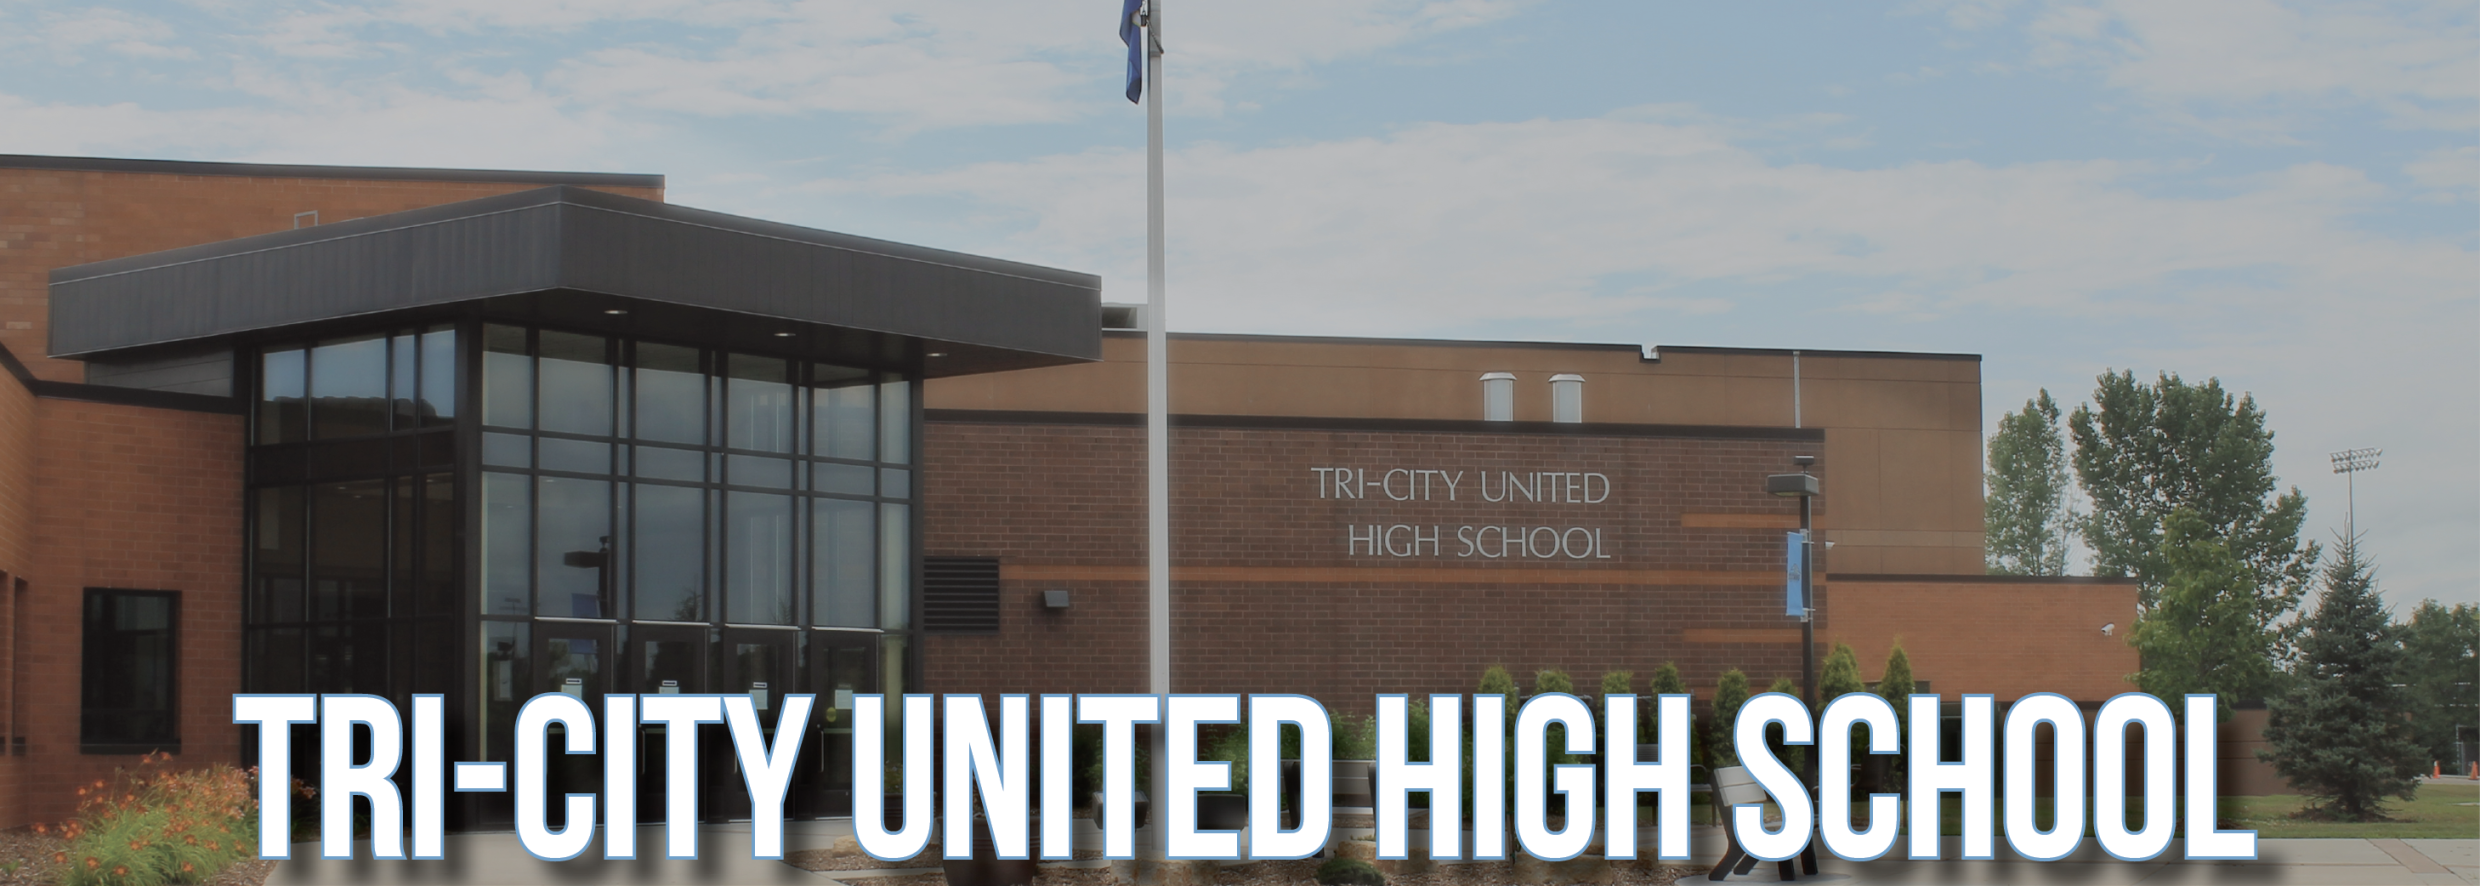 tri-city united high school building image